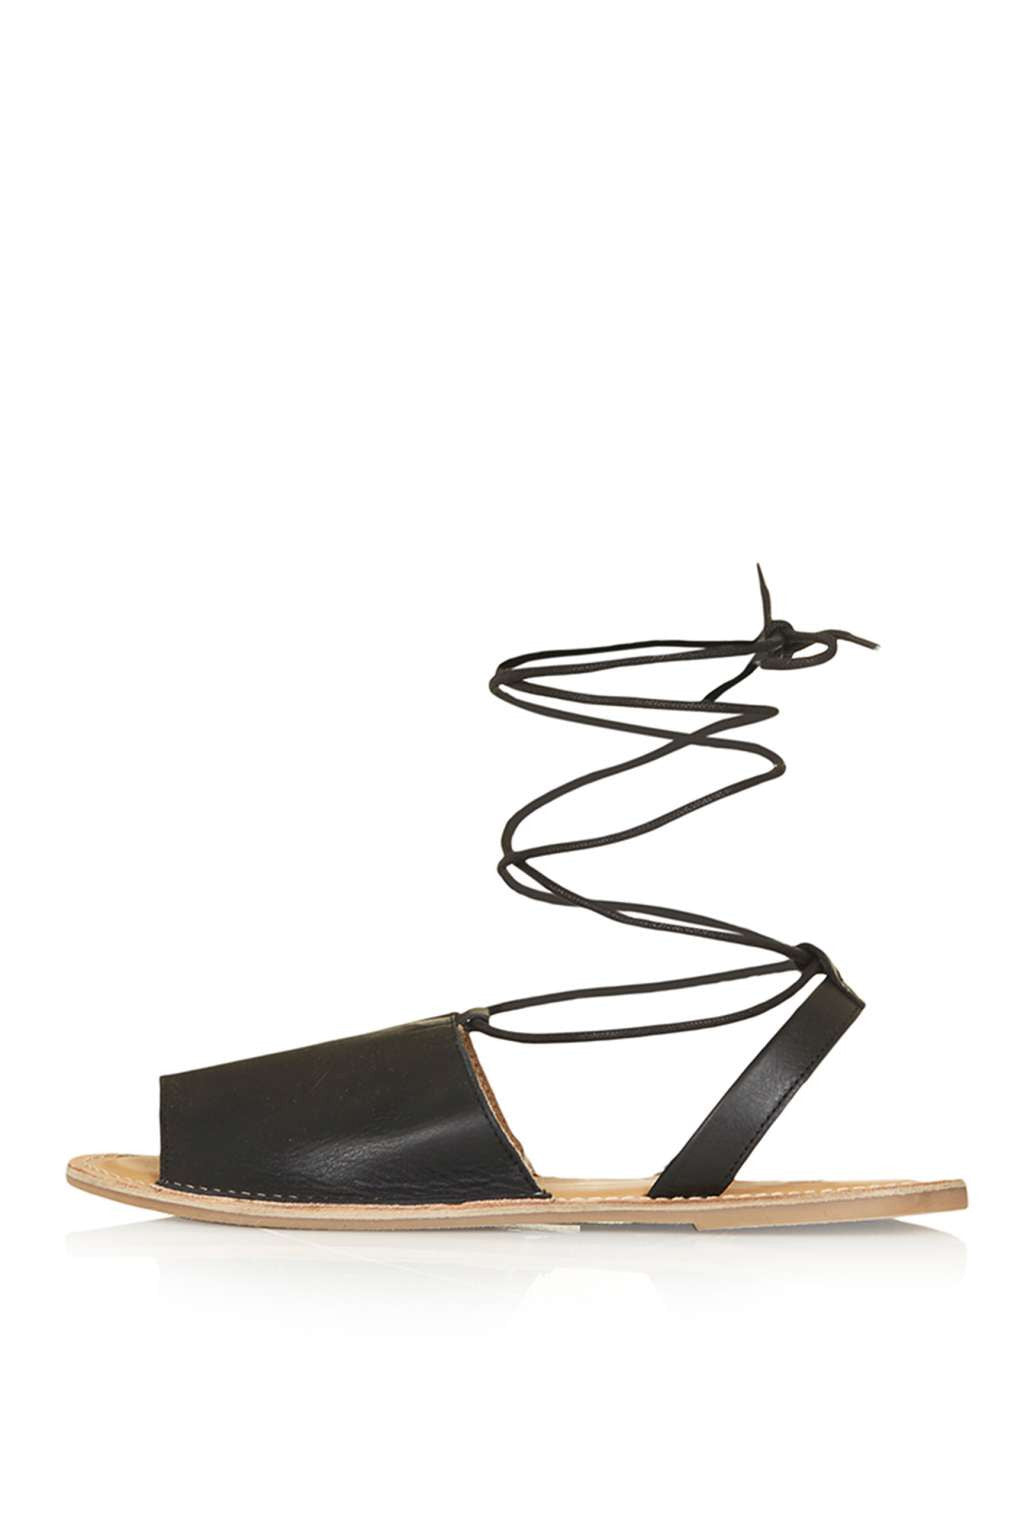 TopShop Holly Ankle Tie Sandals